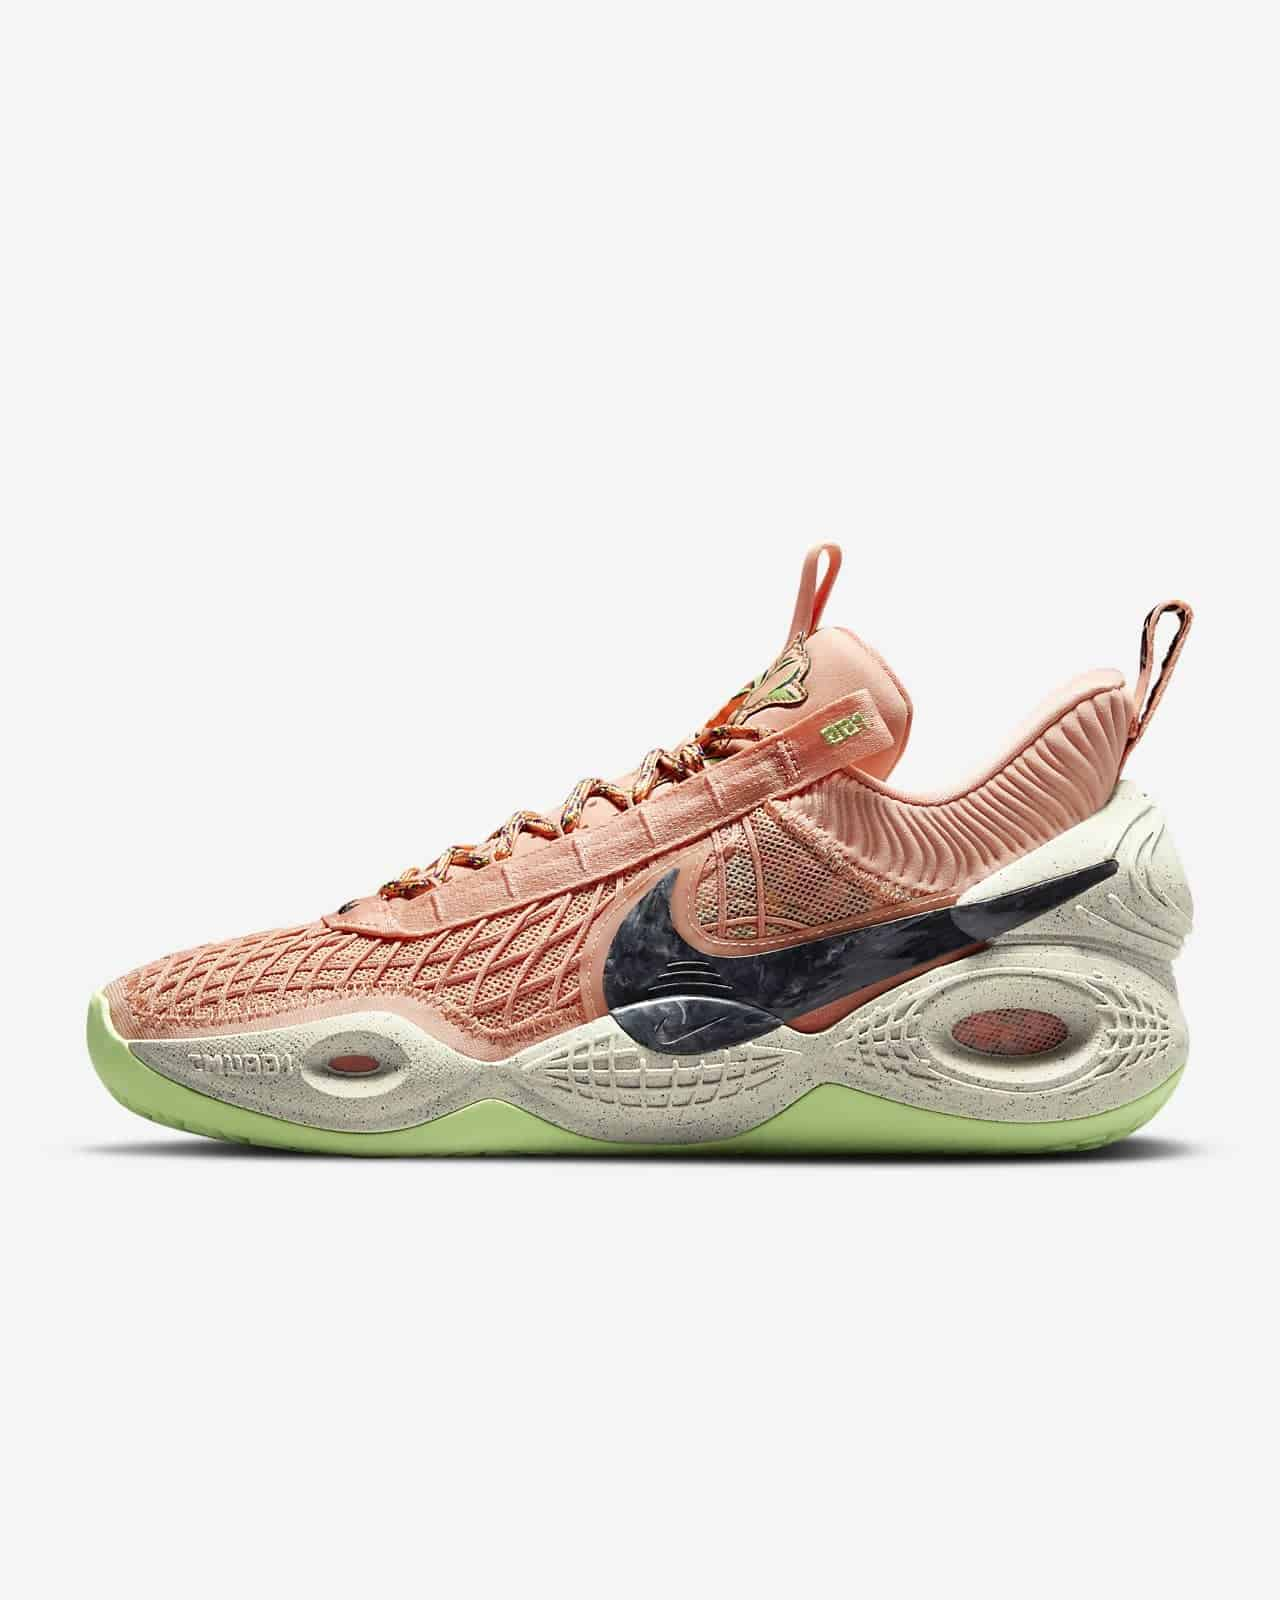 Best Basketball Shoes For Jumping: Cosmic Unity